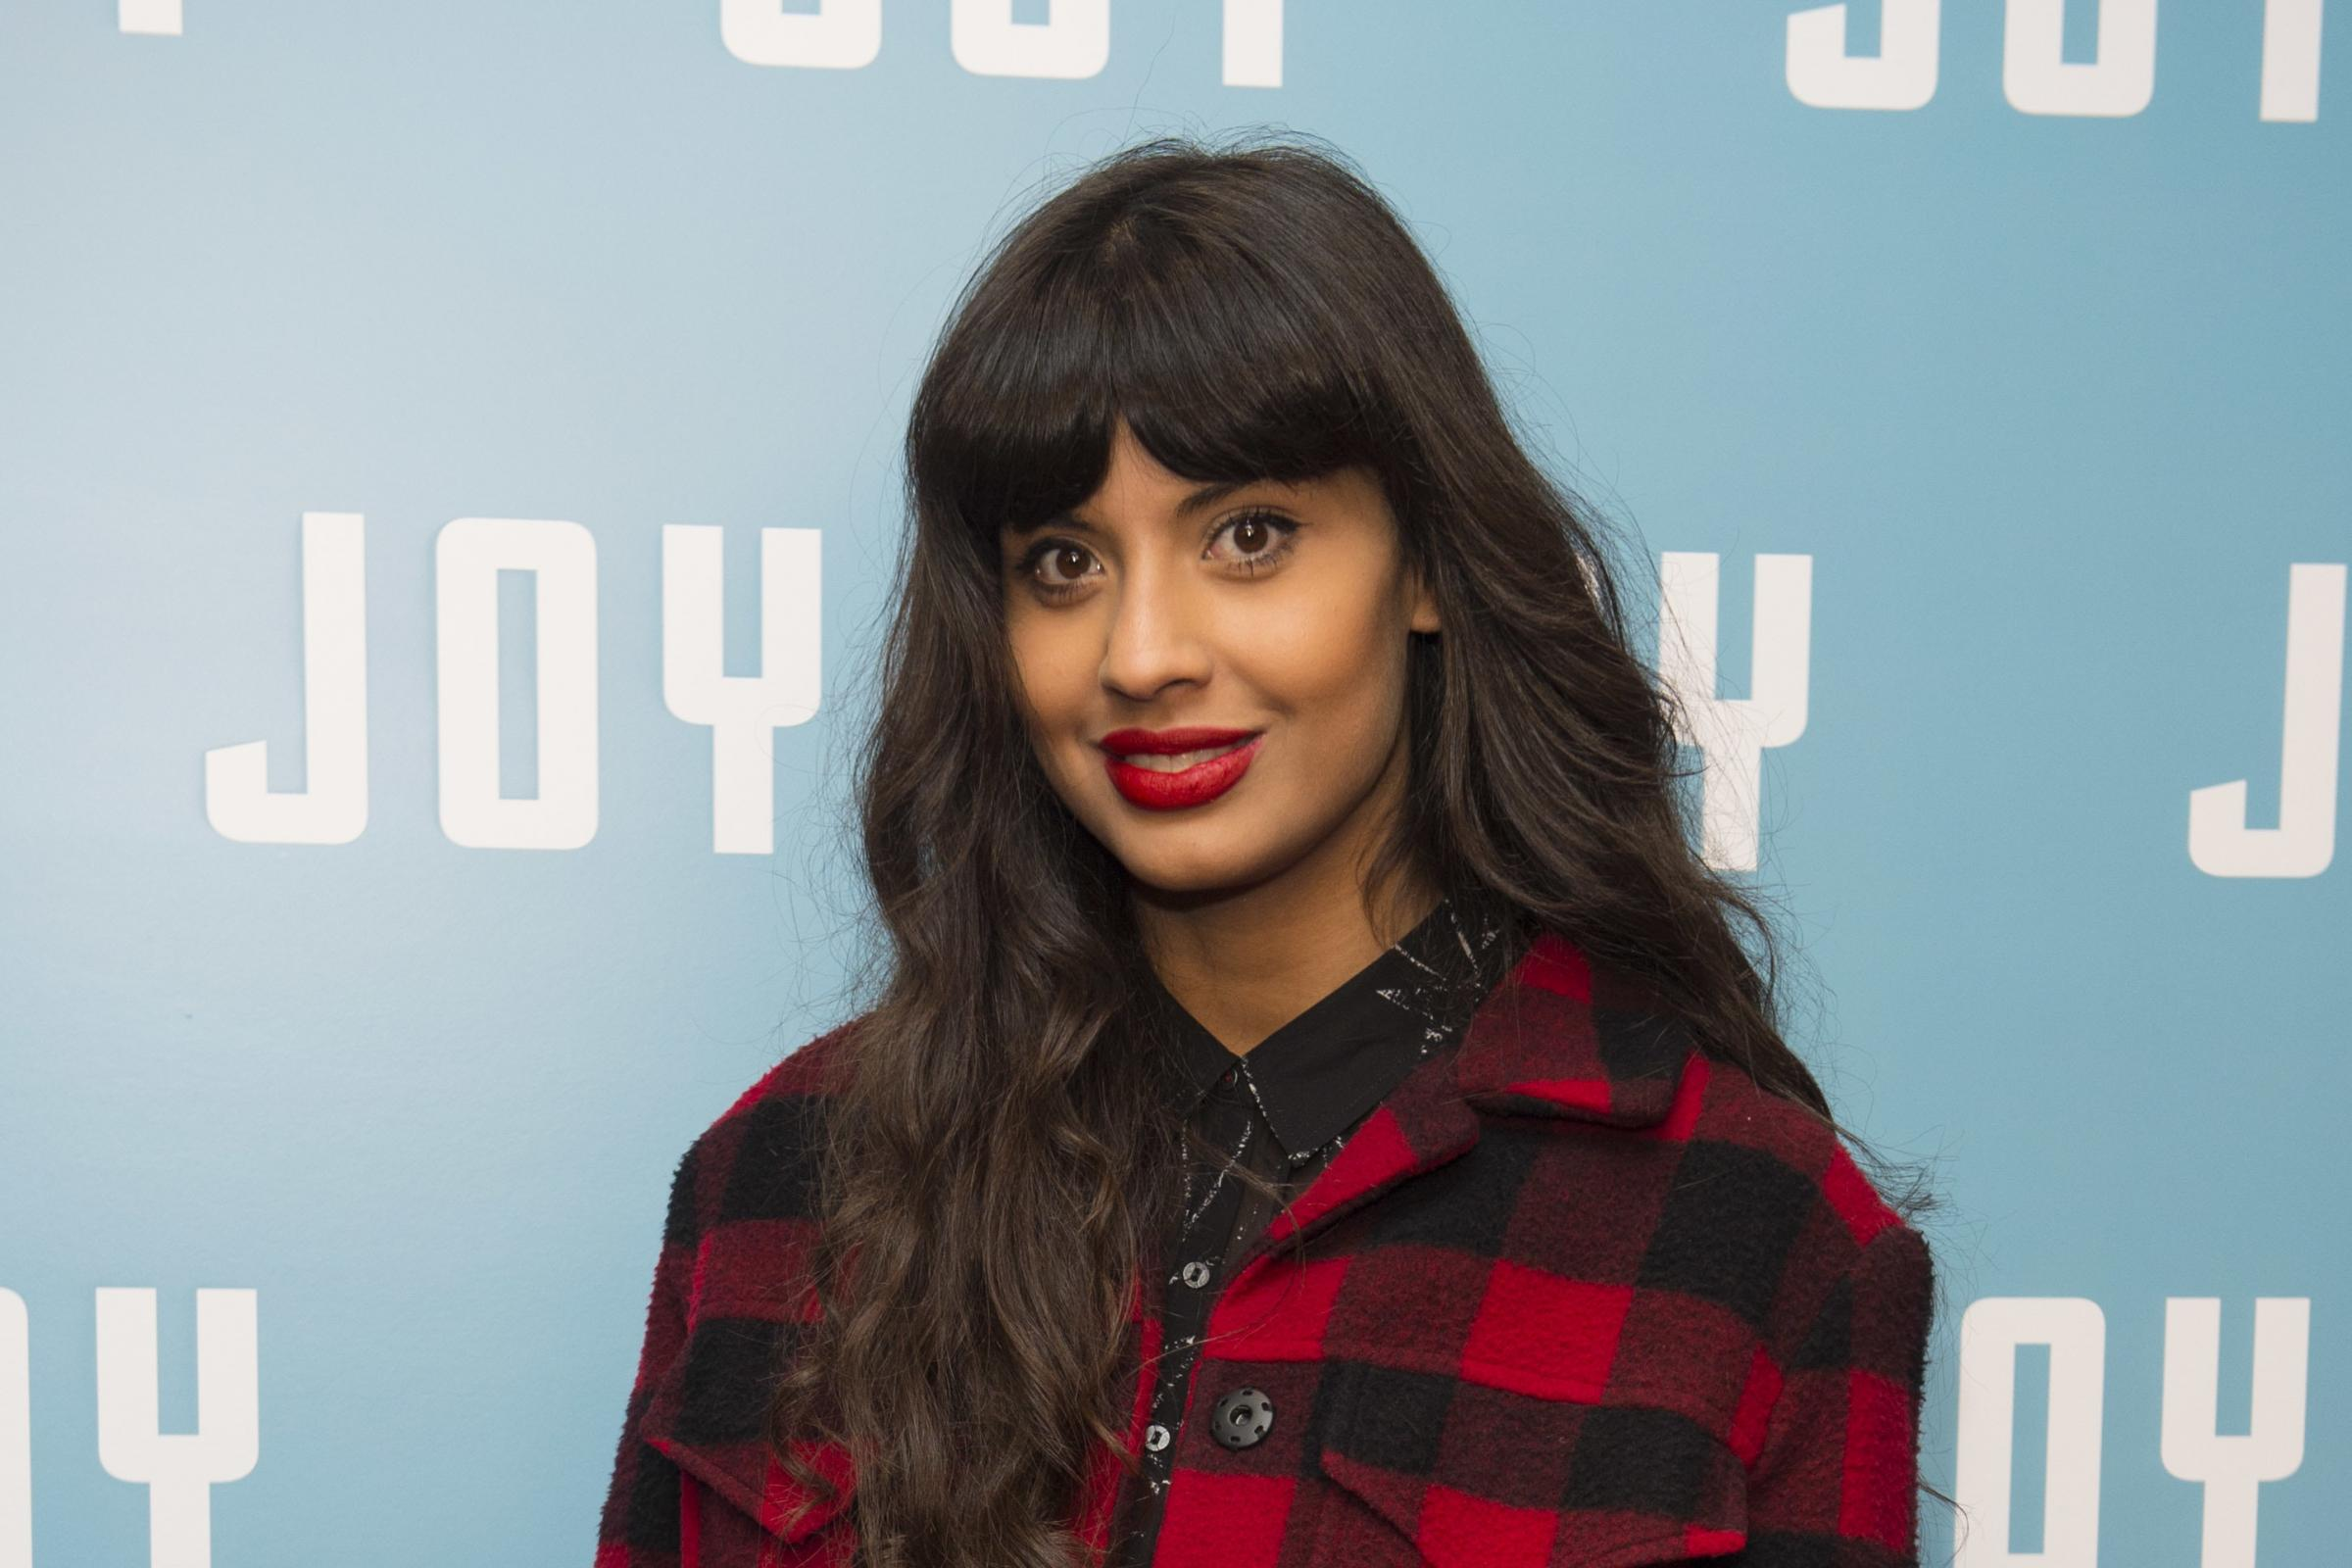 Jameela Jamil at a premiere